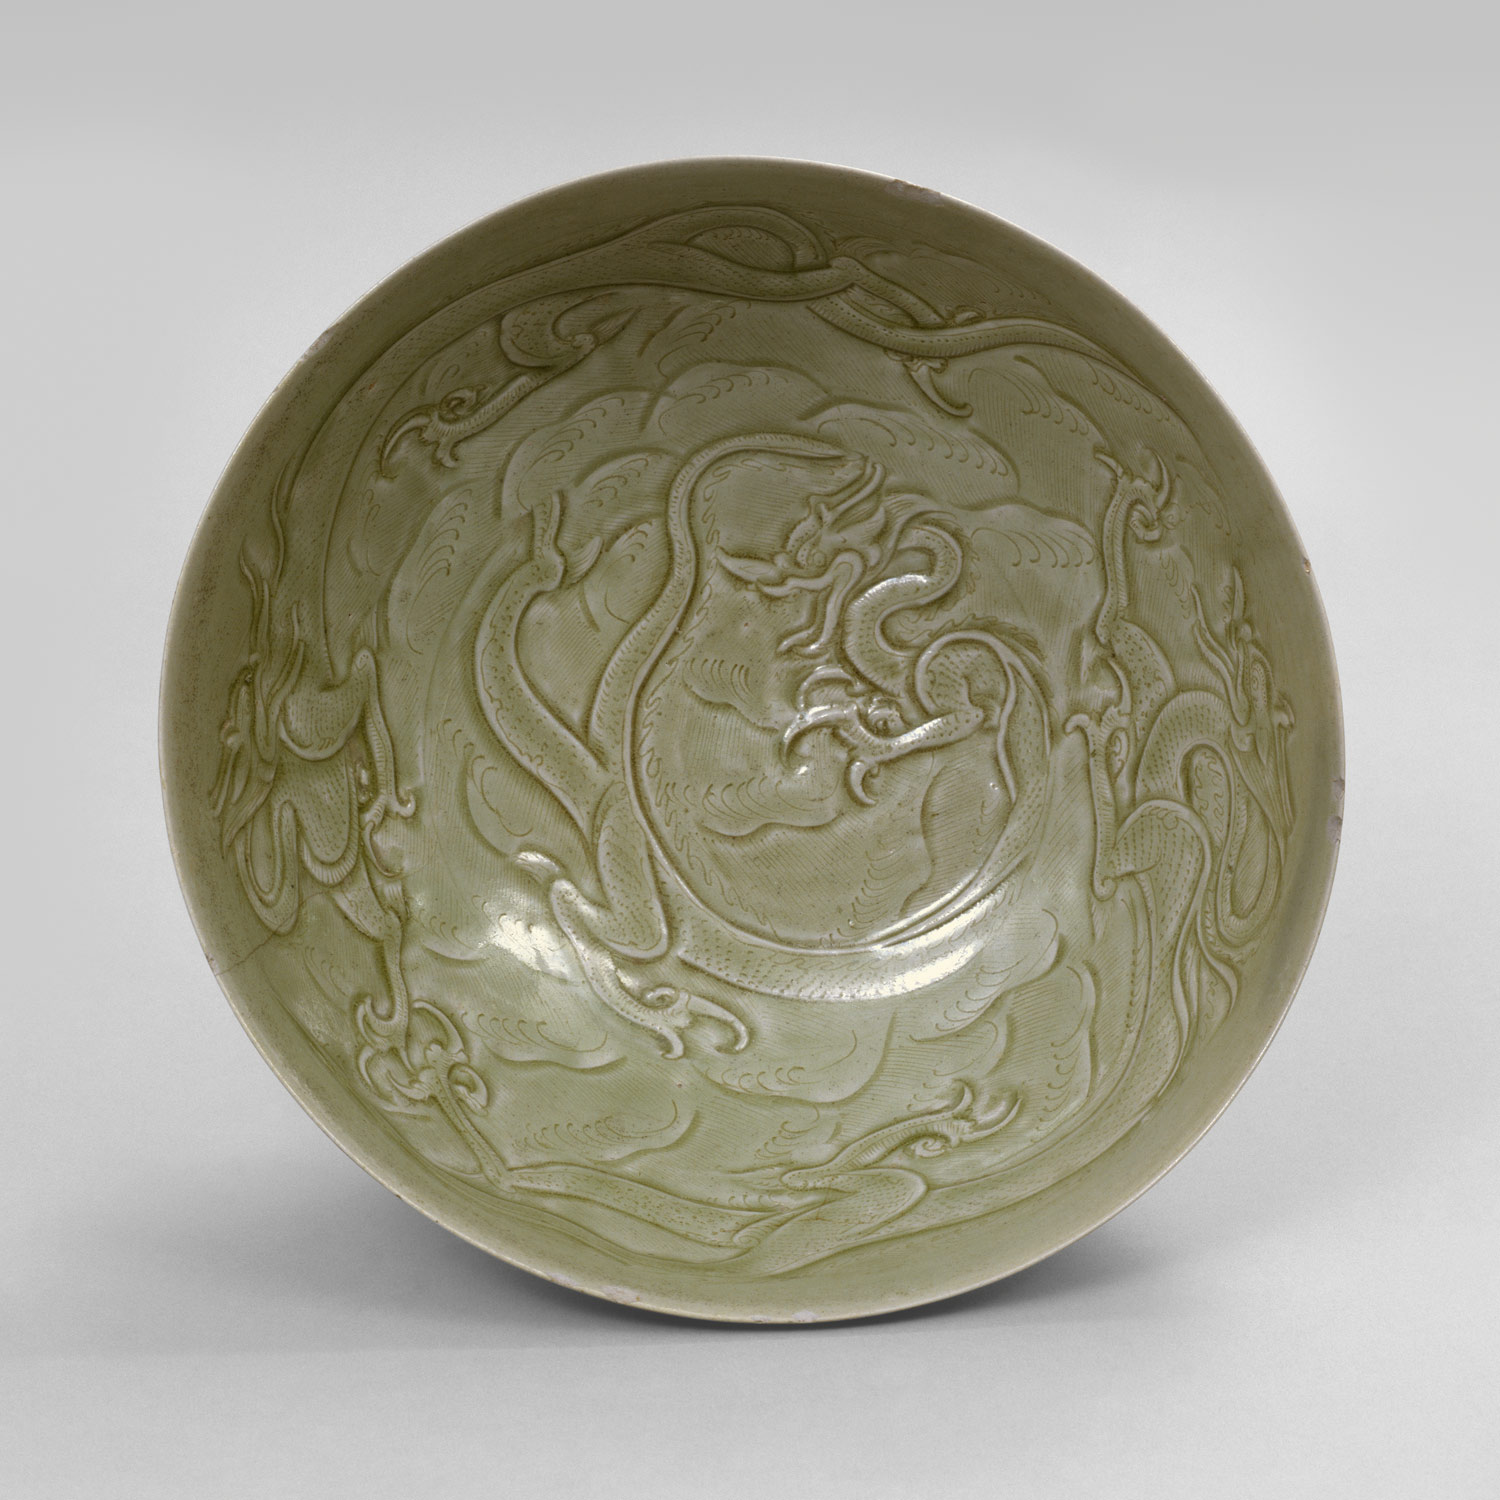 Bowl with Dragons among Waves